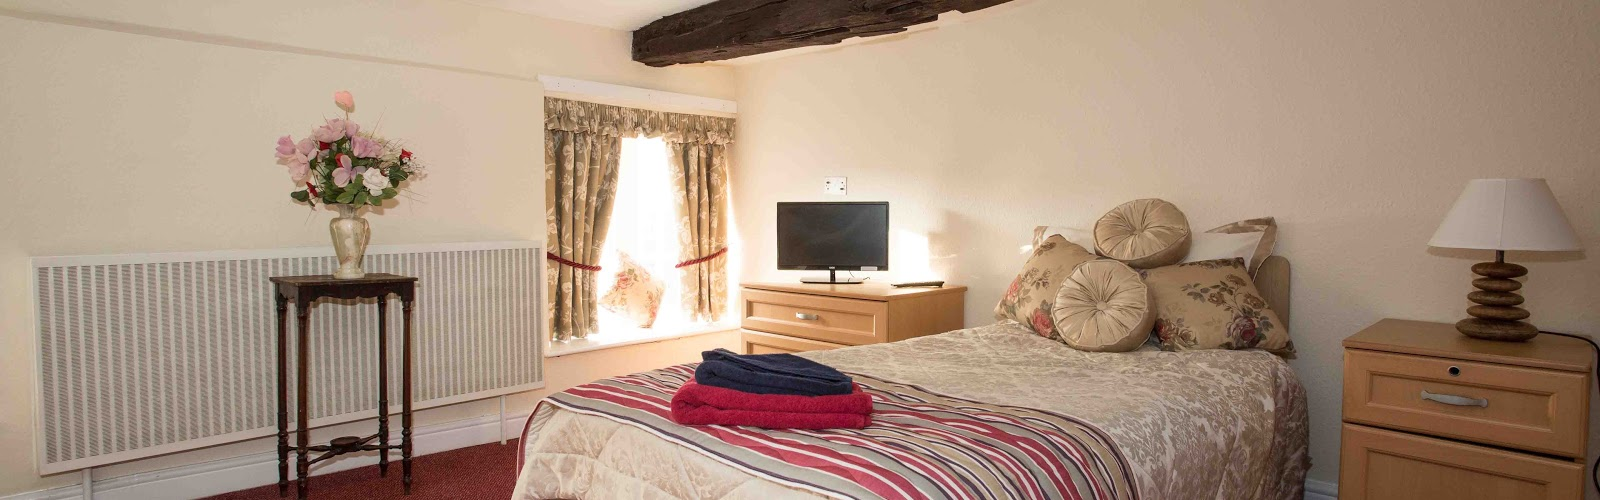 Abundant Room Space & Fresh Bedding In Residential Care, Whiston Hall, Rotherham